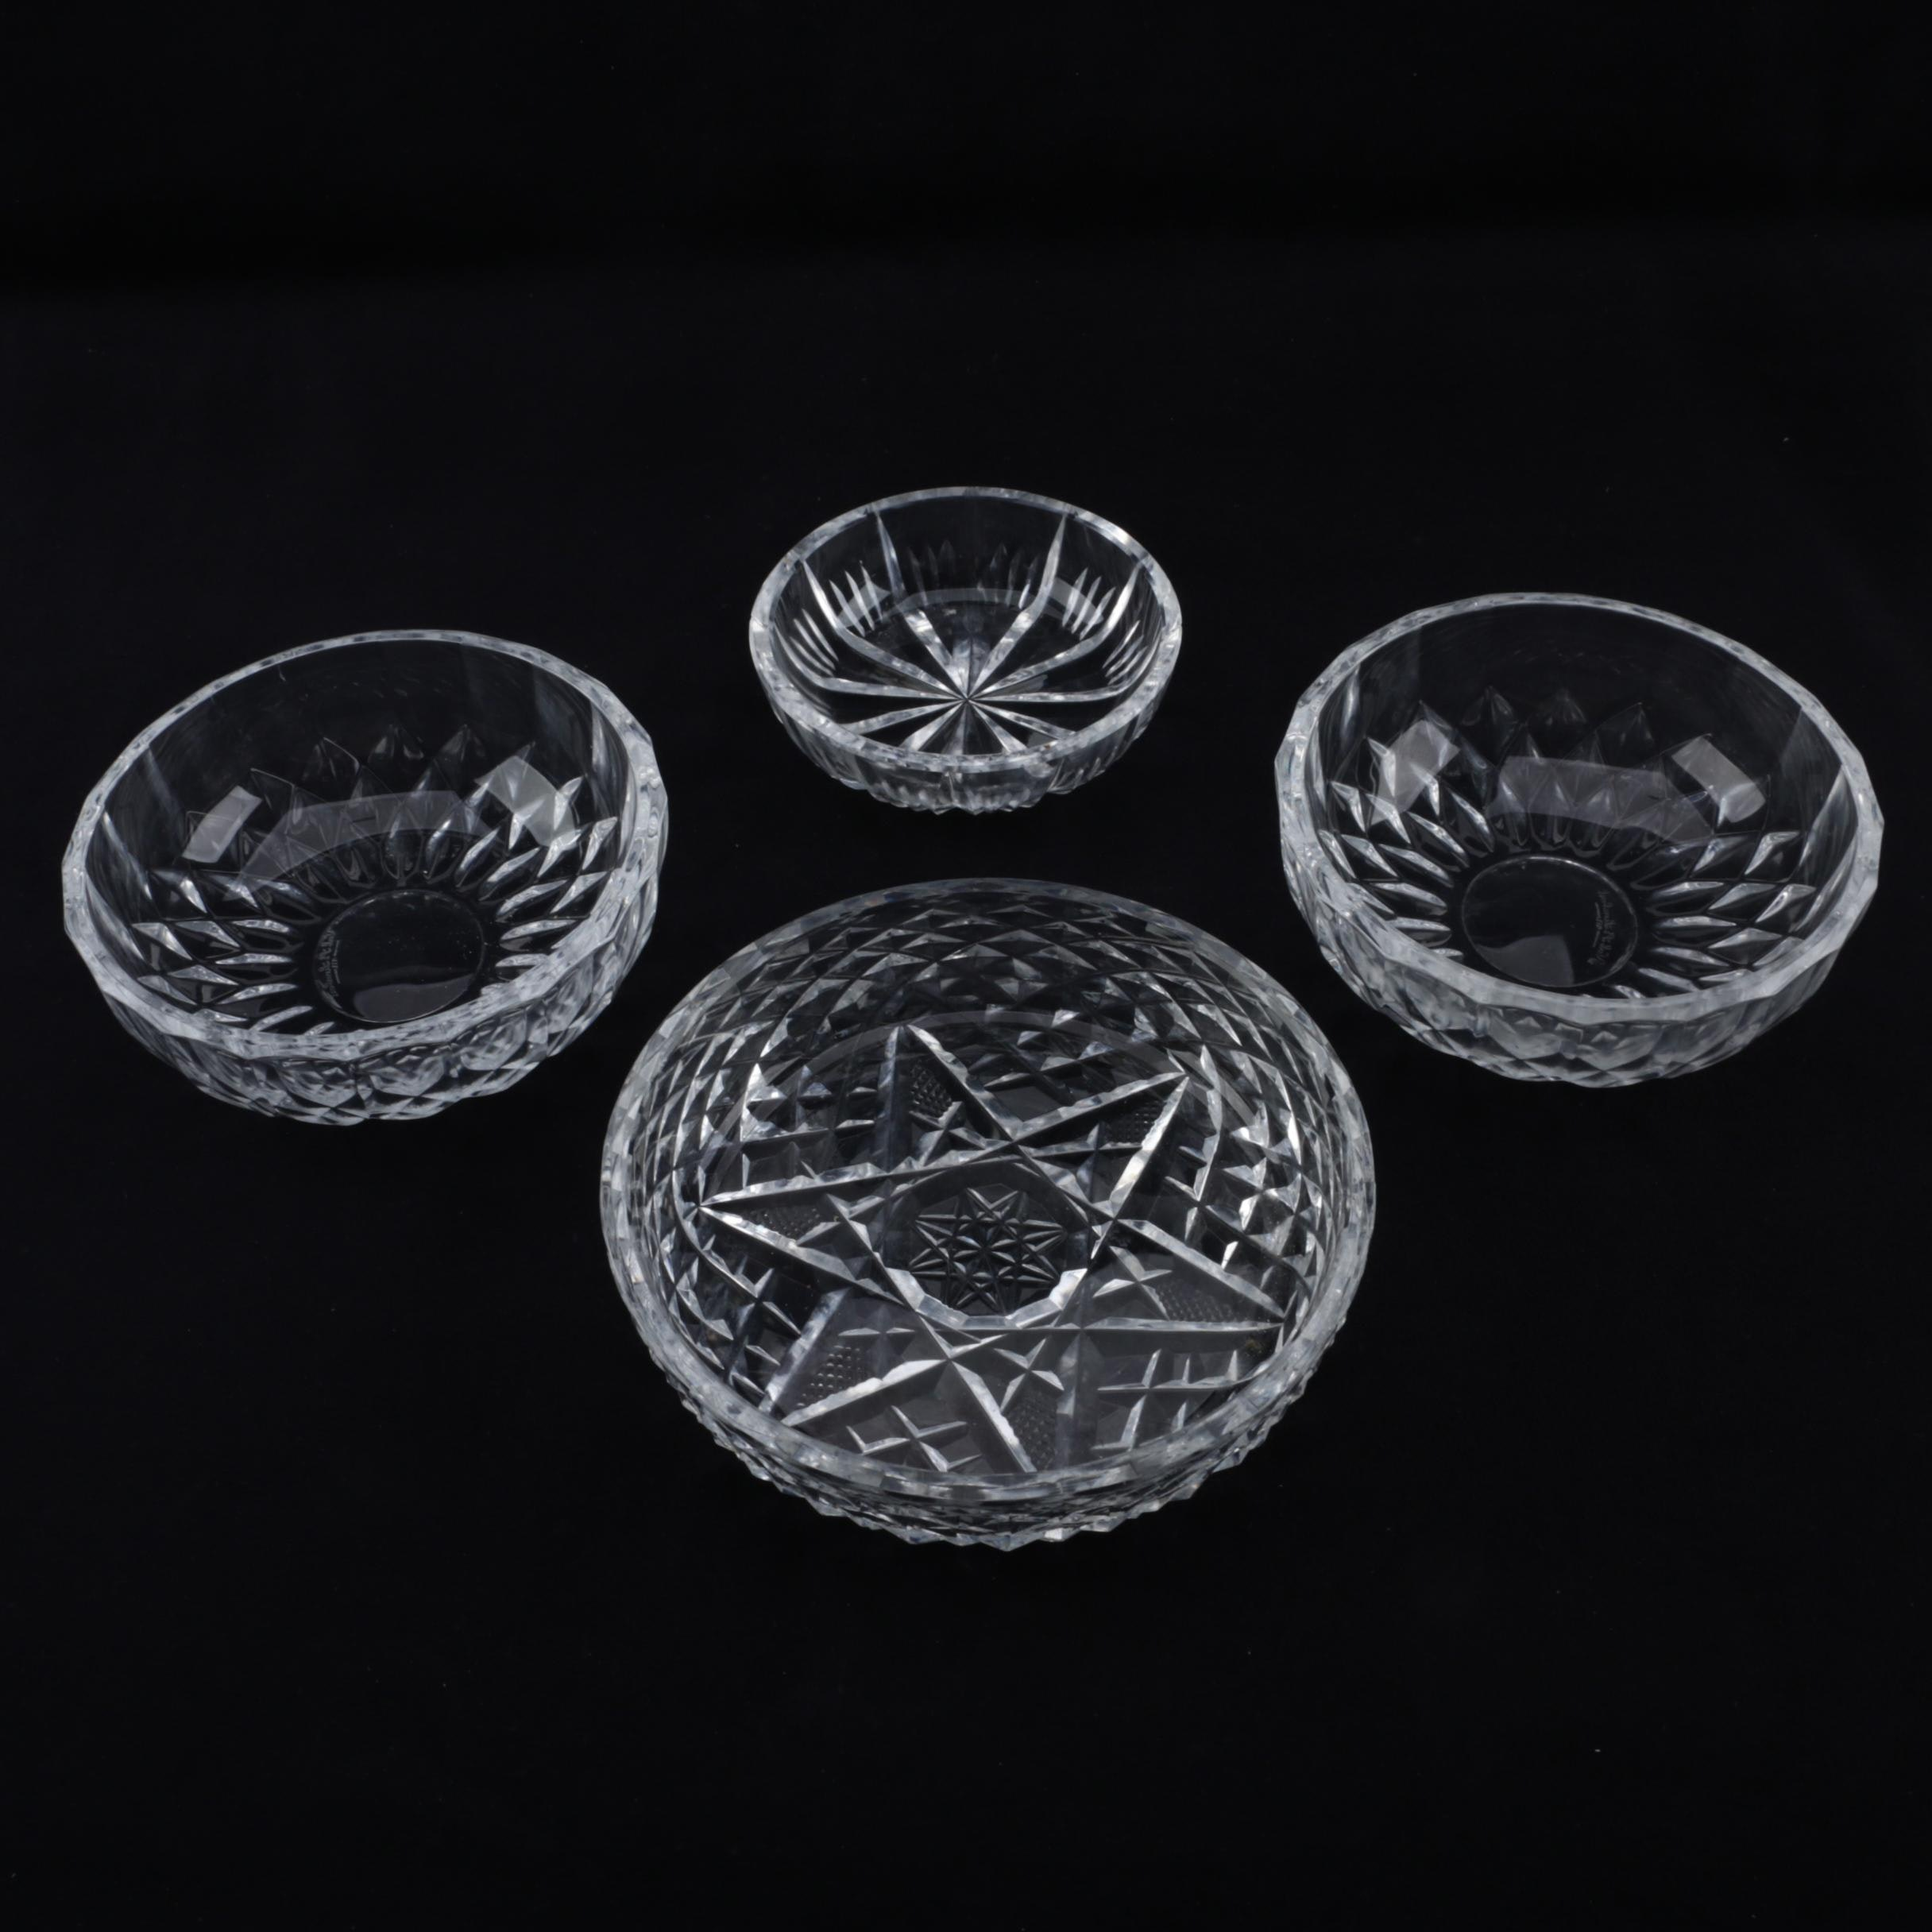 Crystal Bowls Featuring Waterford Crystal and Val St. Lambert